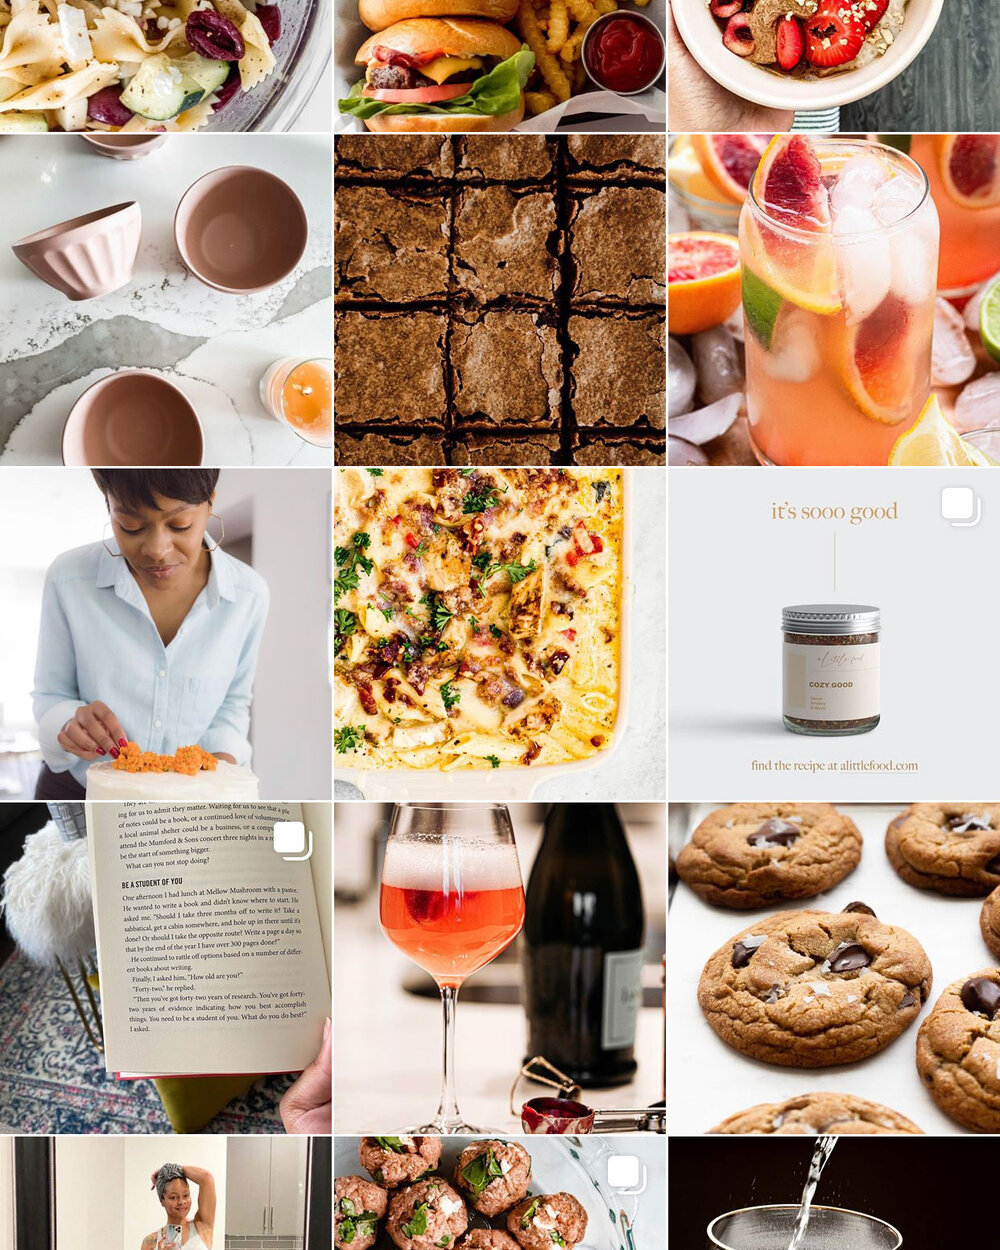 """- A Little Food BlogSelf-taught chef Jaylynn creates recipes to ispire others to """"cook well and stay cozy"""""""